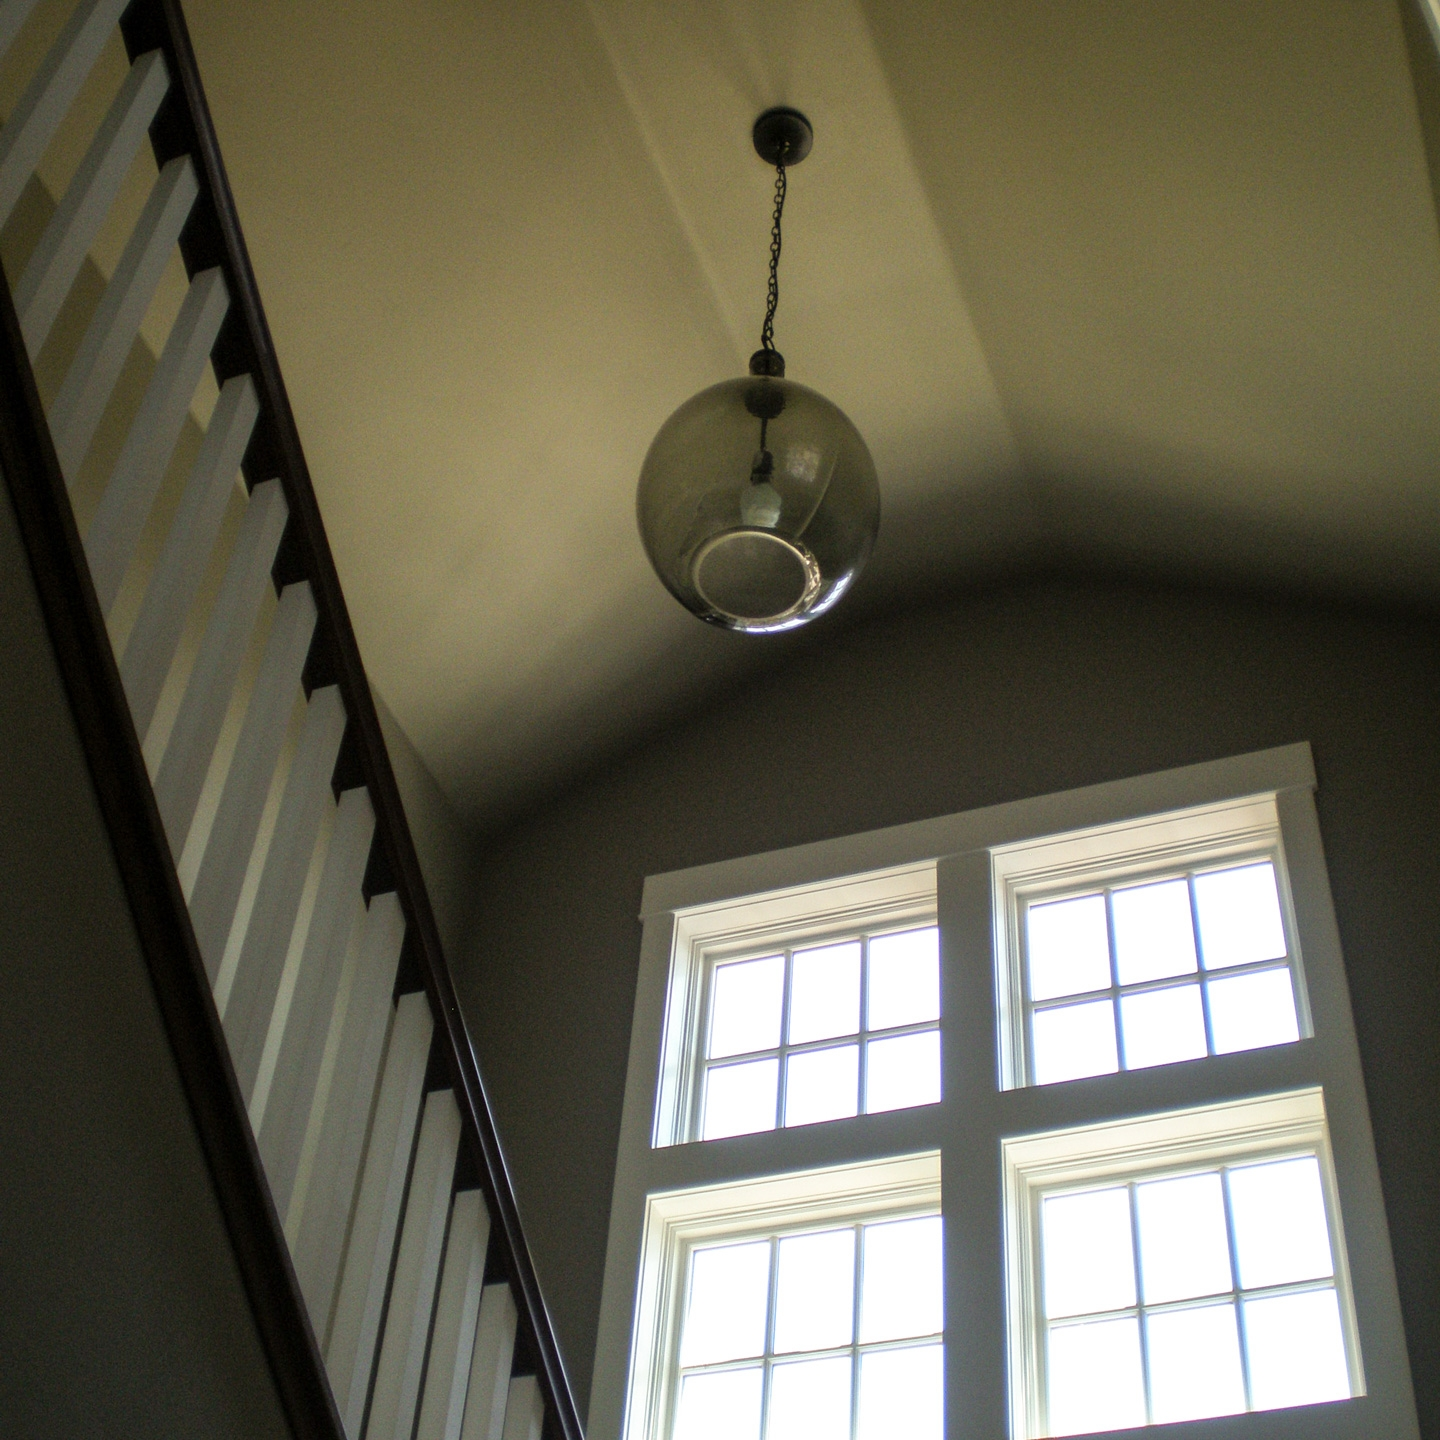 Staircase-light.jpg